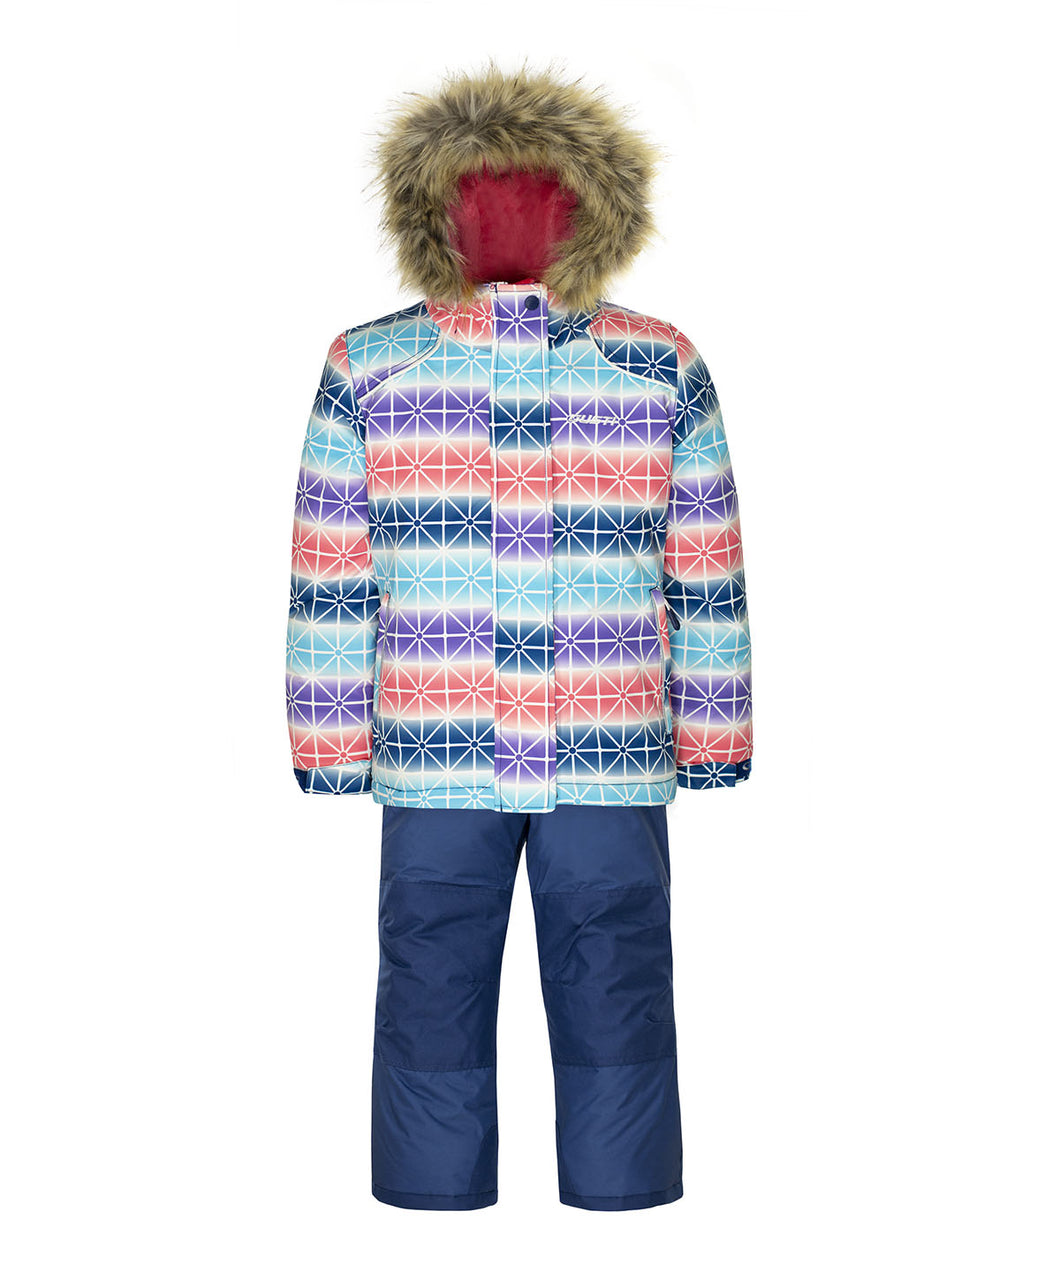 IZALINE - Estate Blue - Girls Jacket and Snow Pant Set